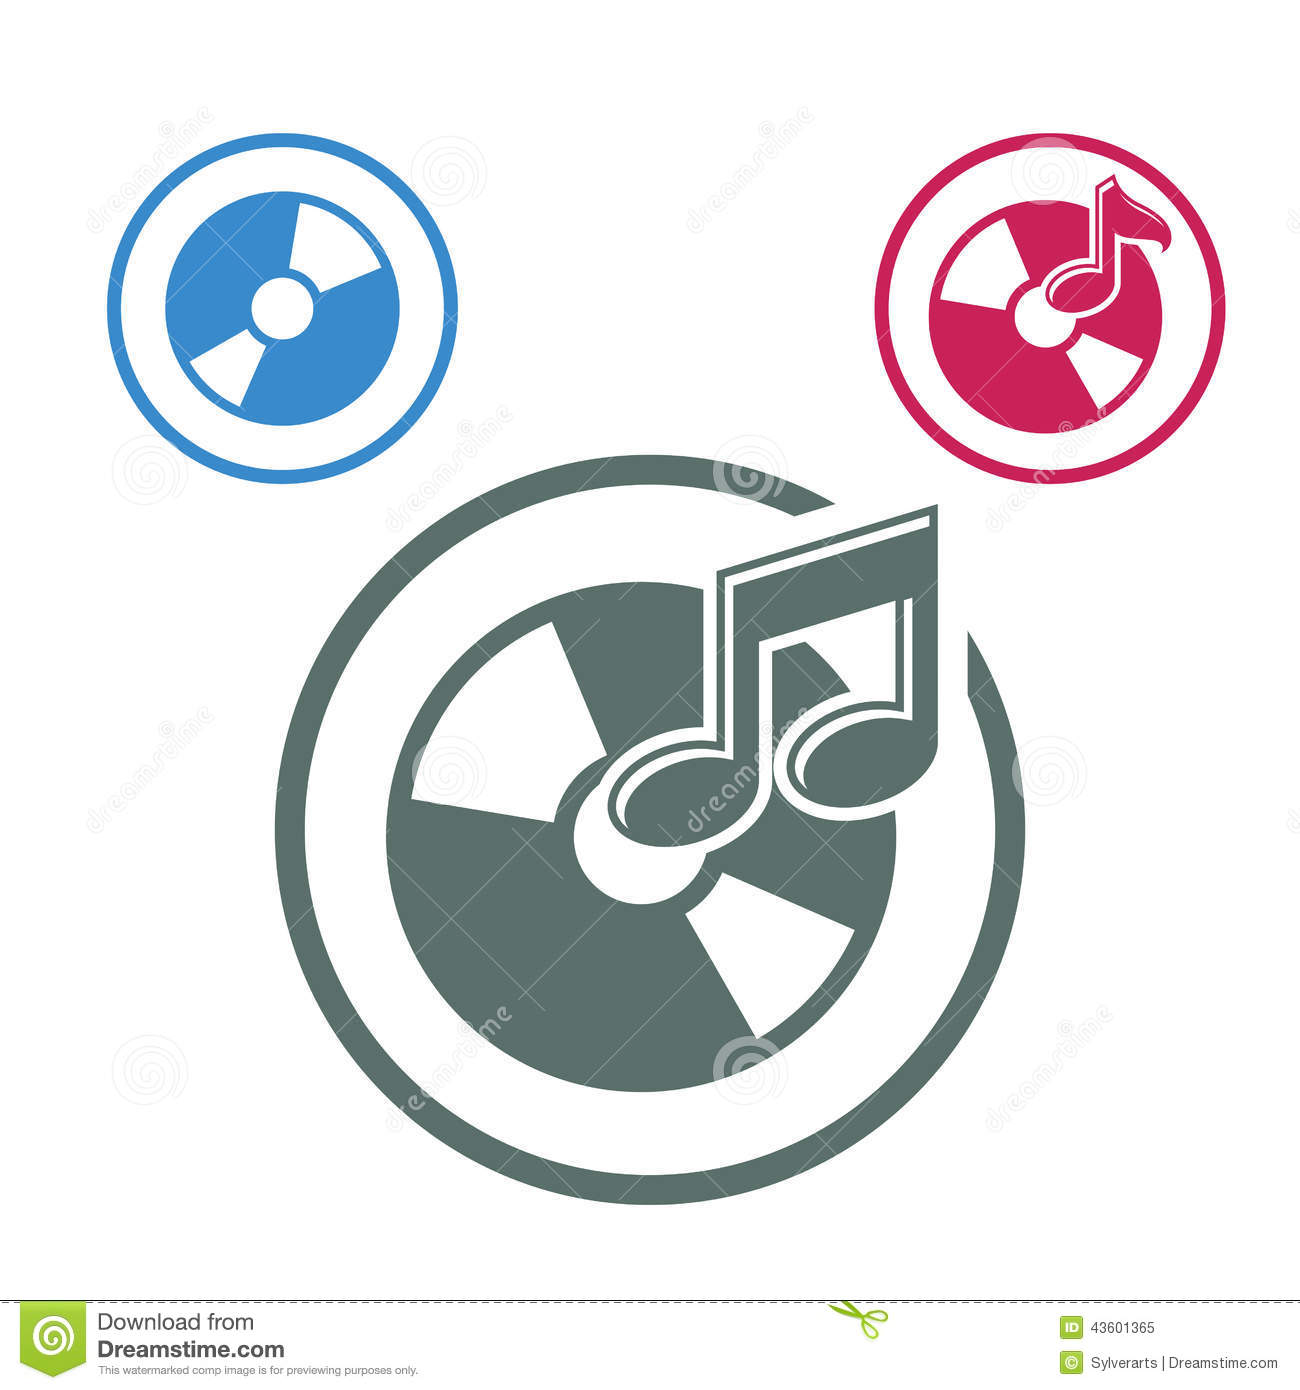 Audio Cd Icon, Single Color Vector Music Theme Symbol For